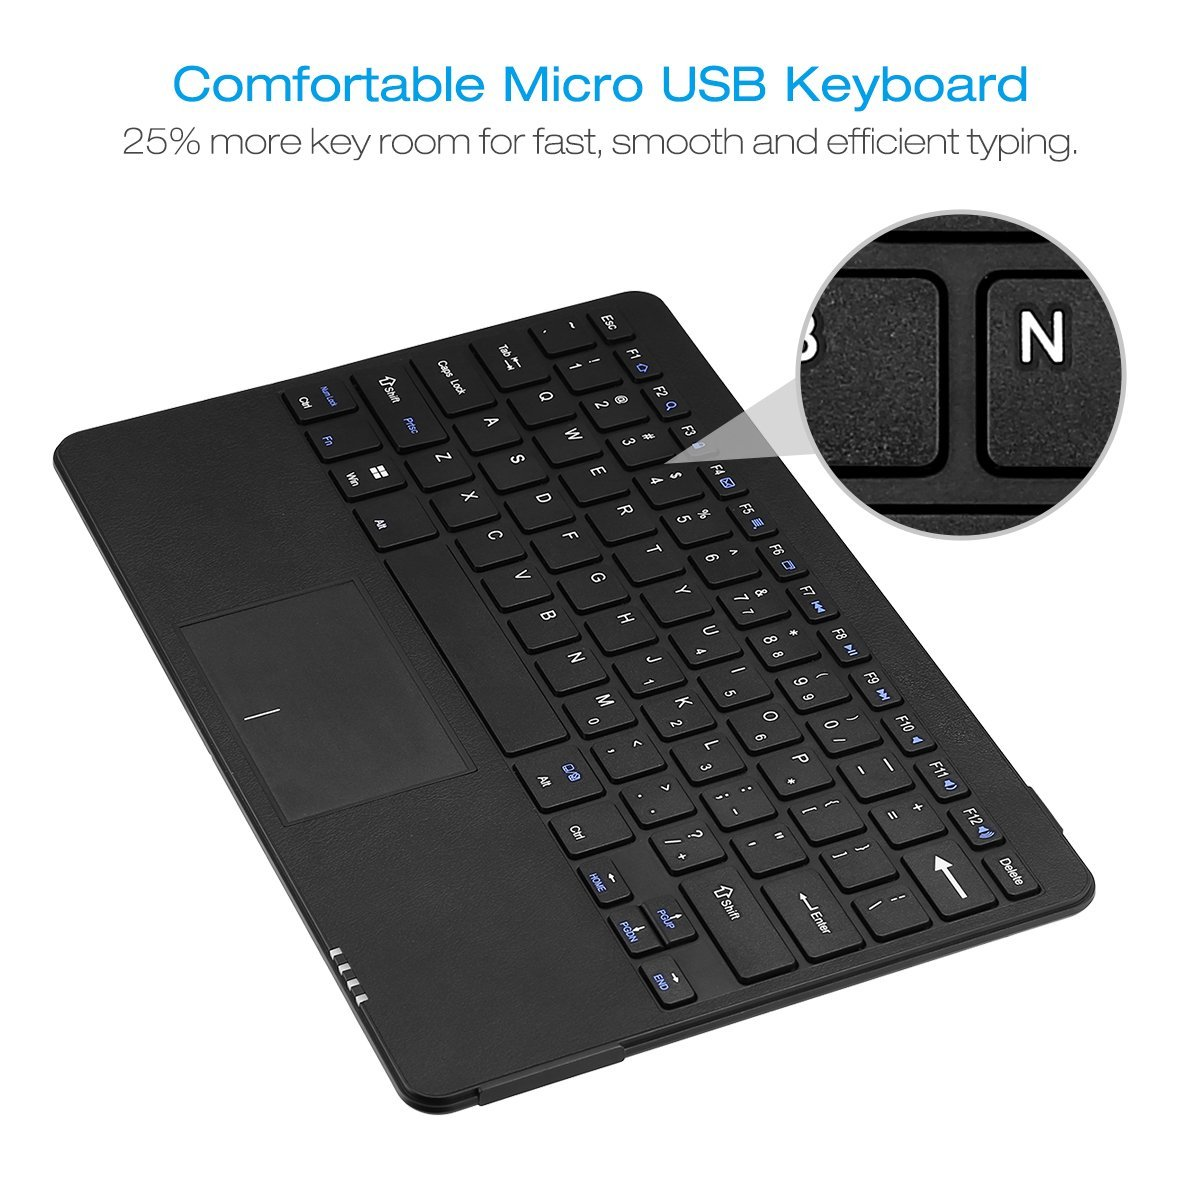 Poweradd 78 Keys Micro Usb Qwerty Keyboard With Touchpad Wired